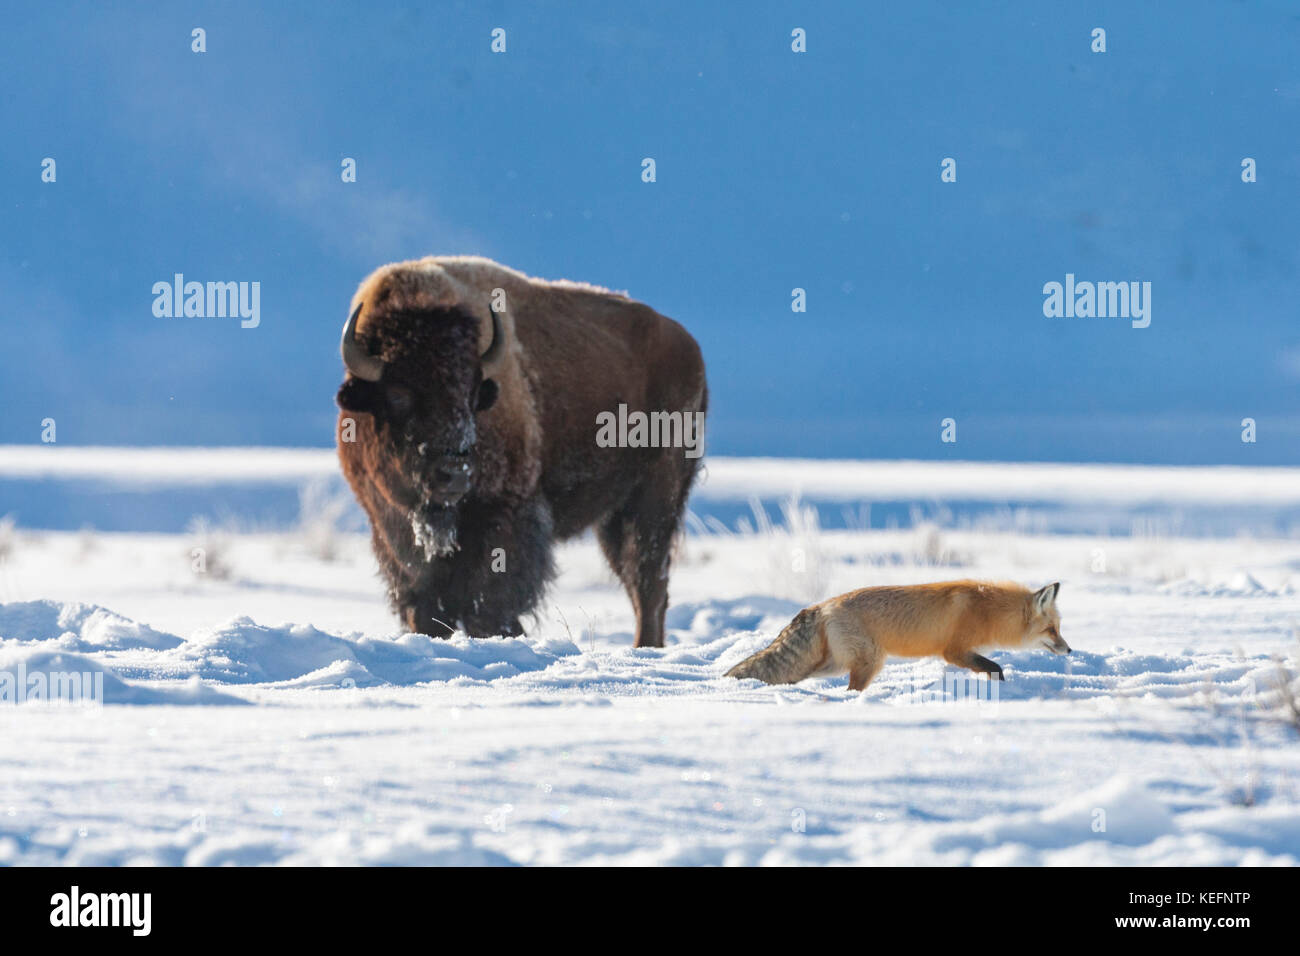 Red fox near bison during winter in Yellowstone National Park - Stock Image